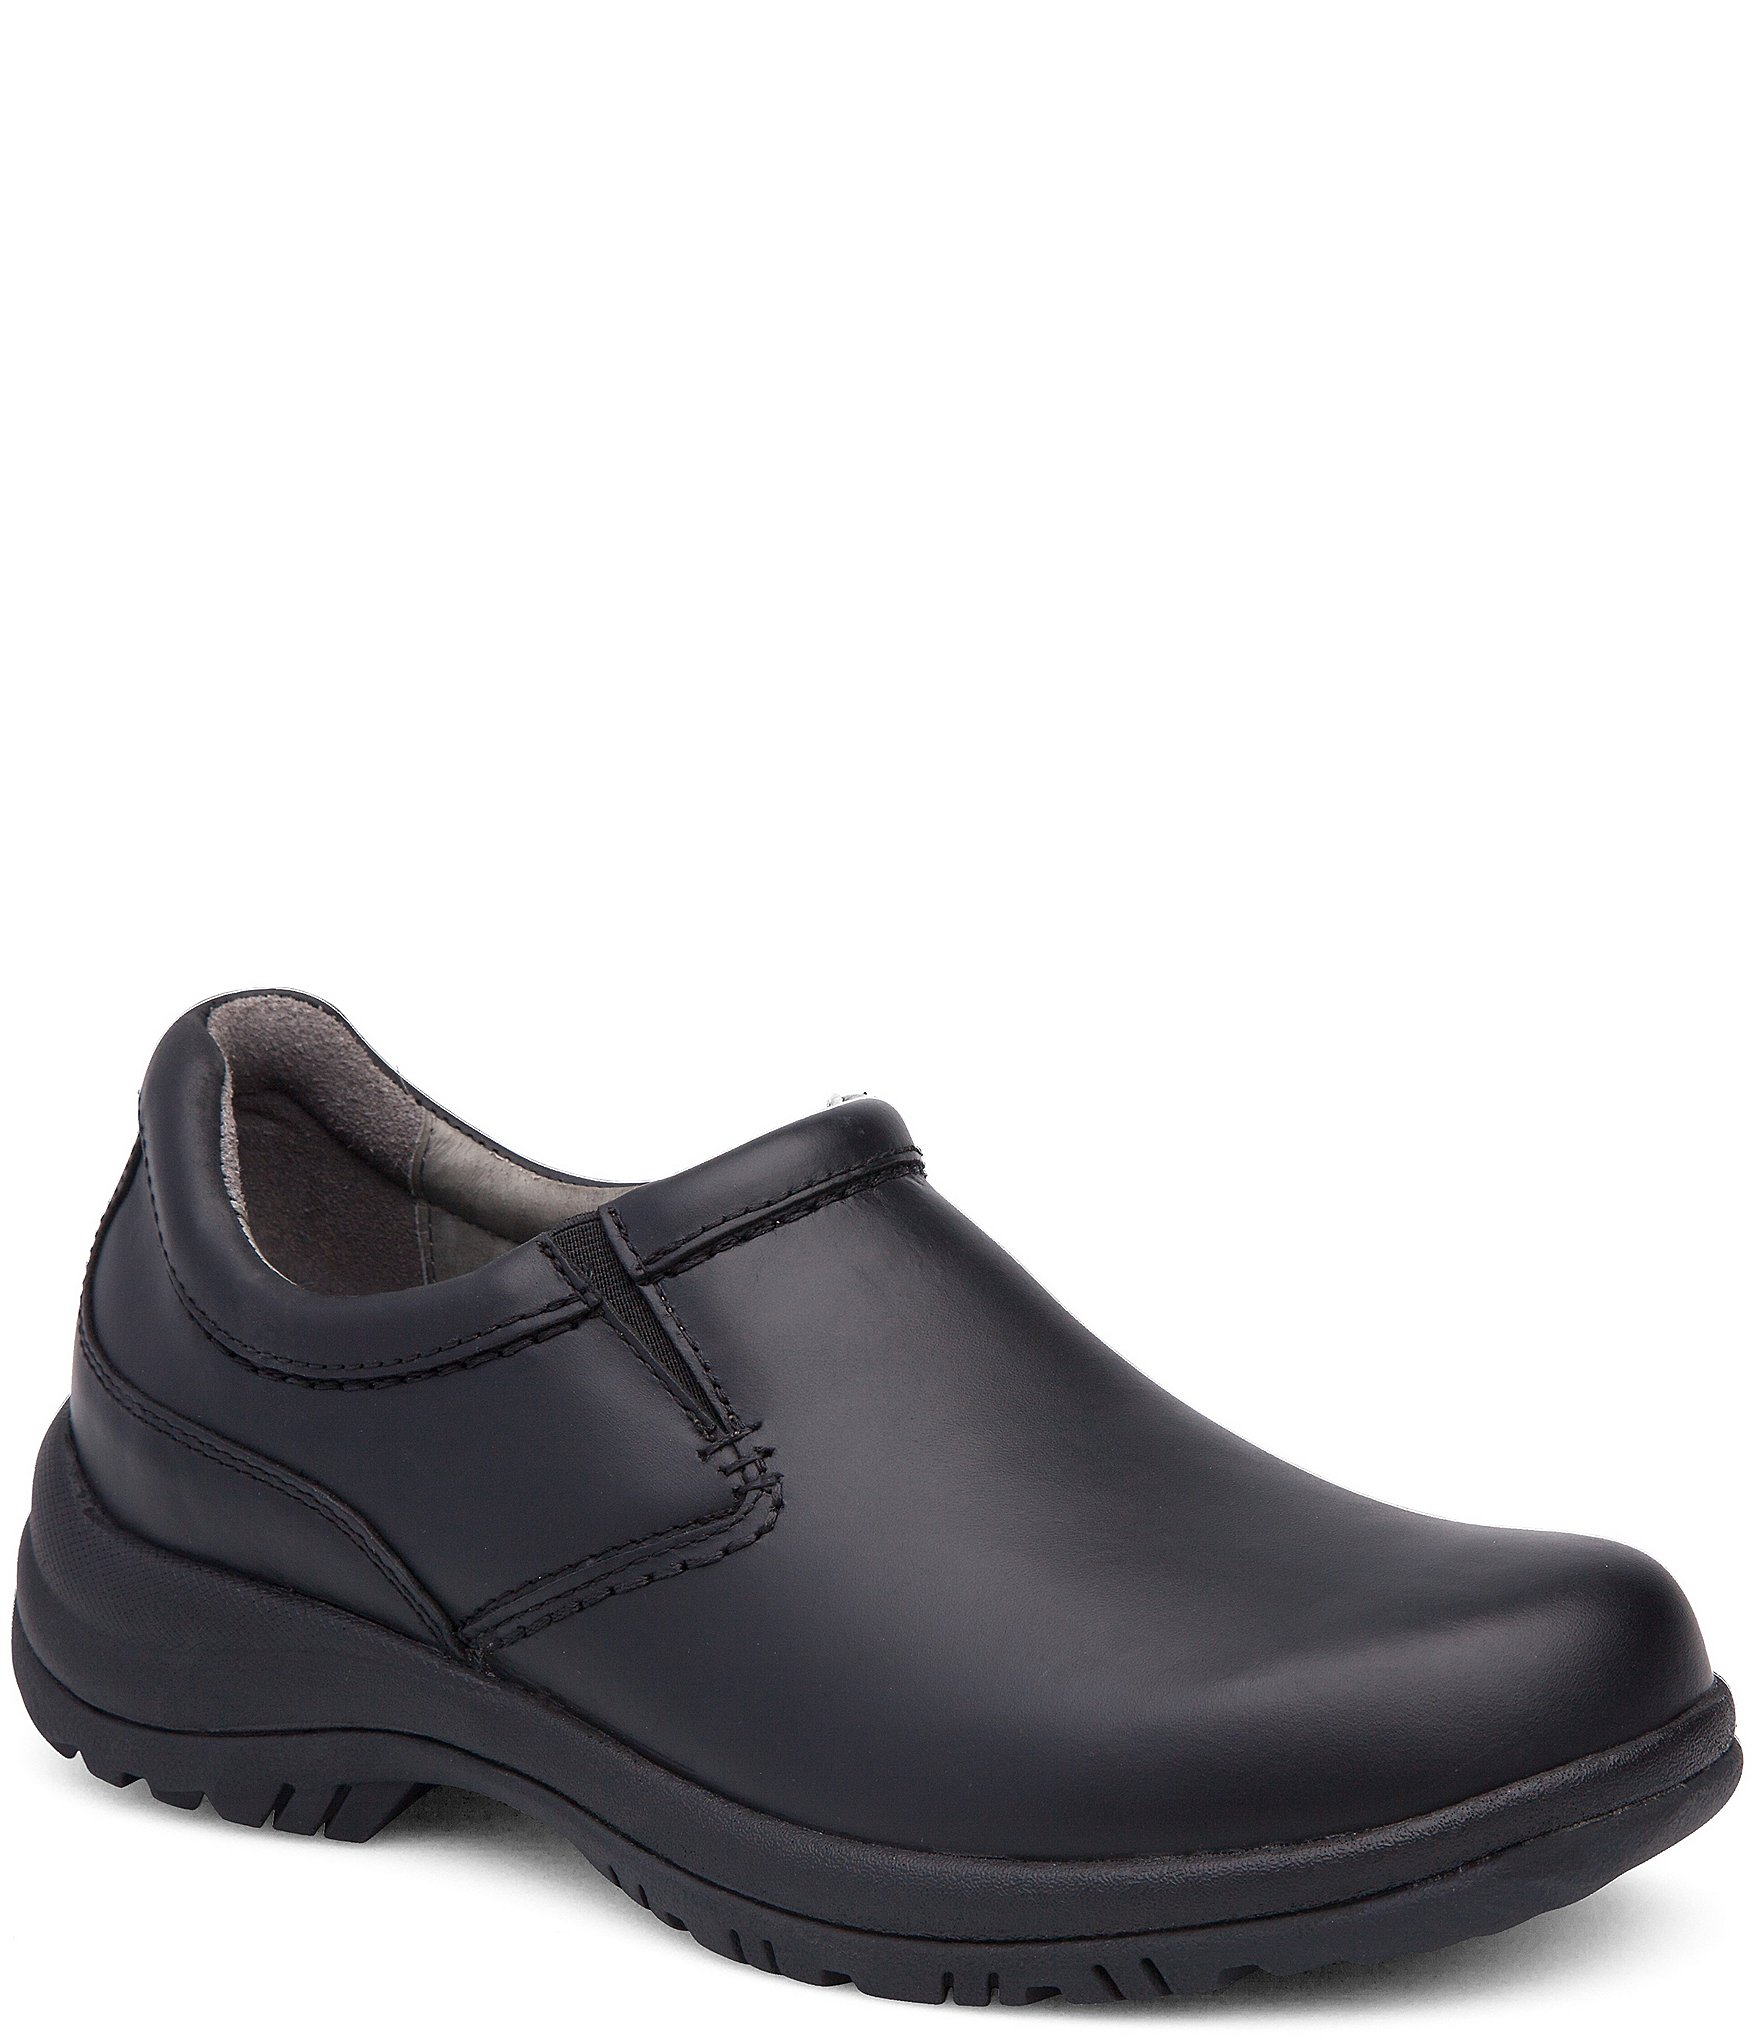 Dansko Shoes Younkers